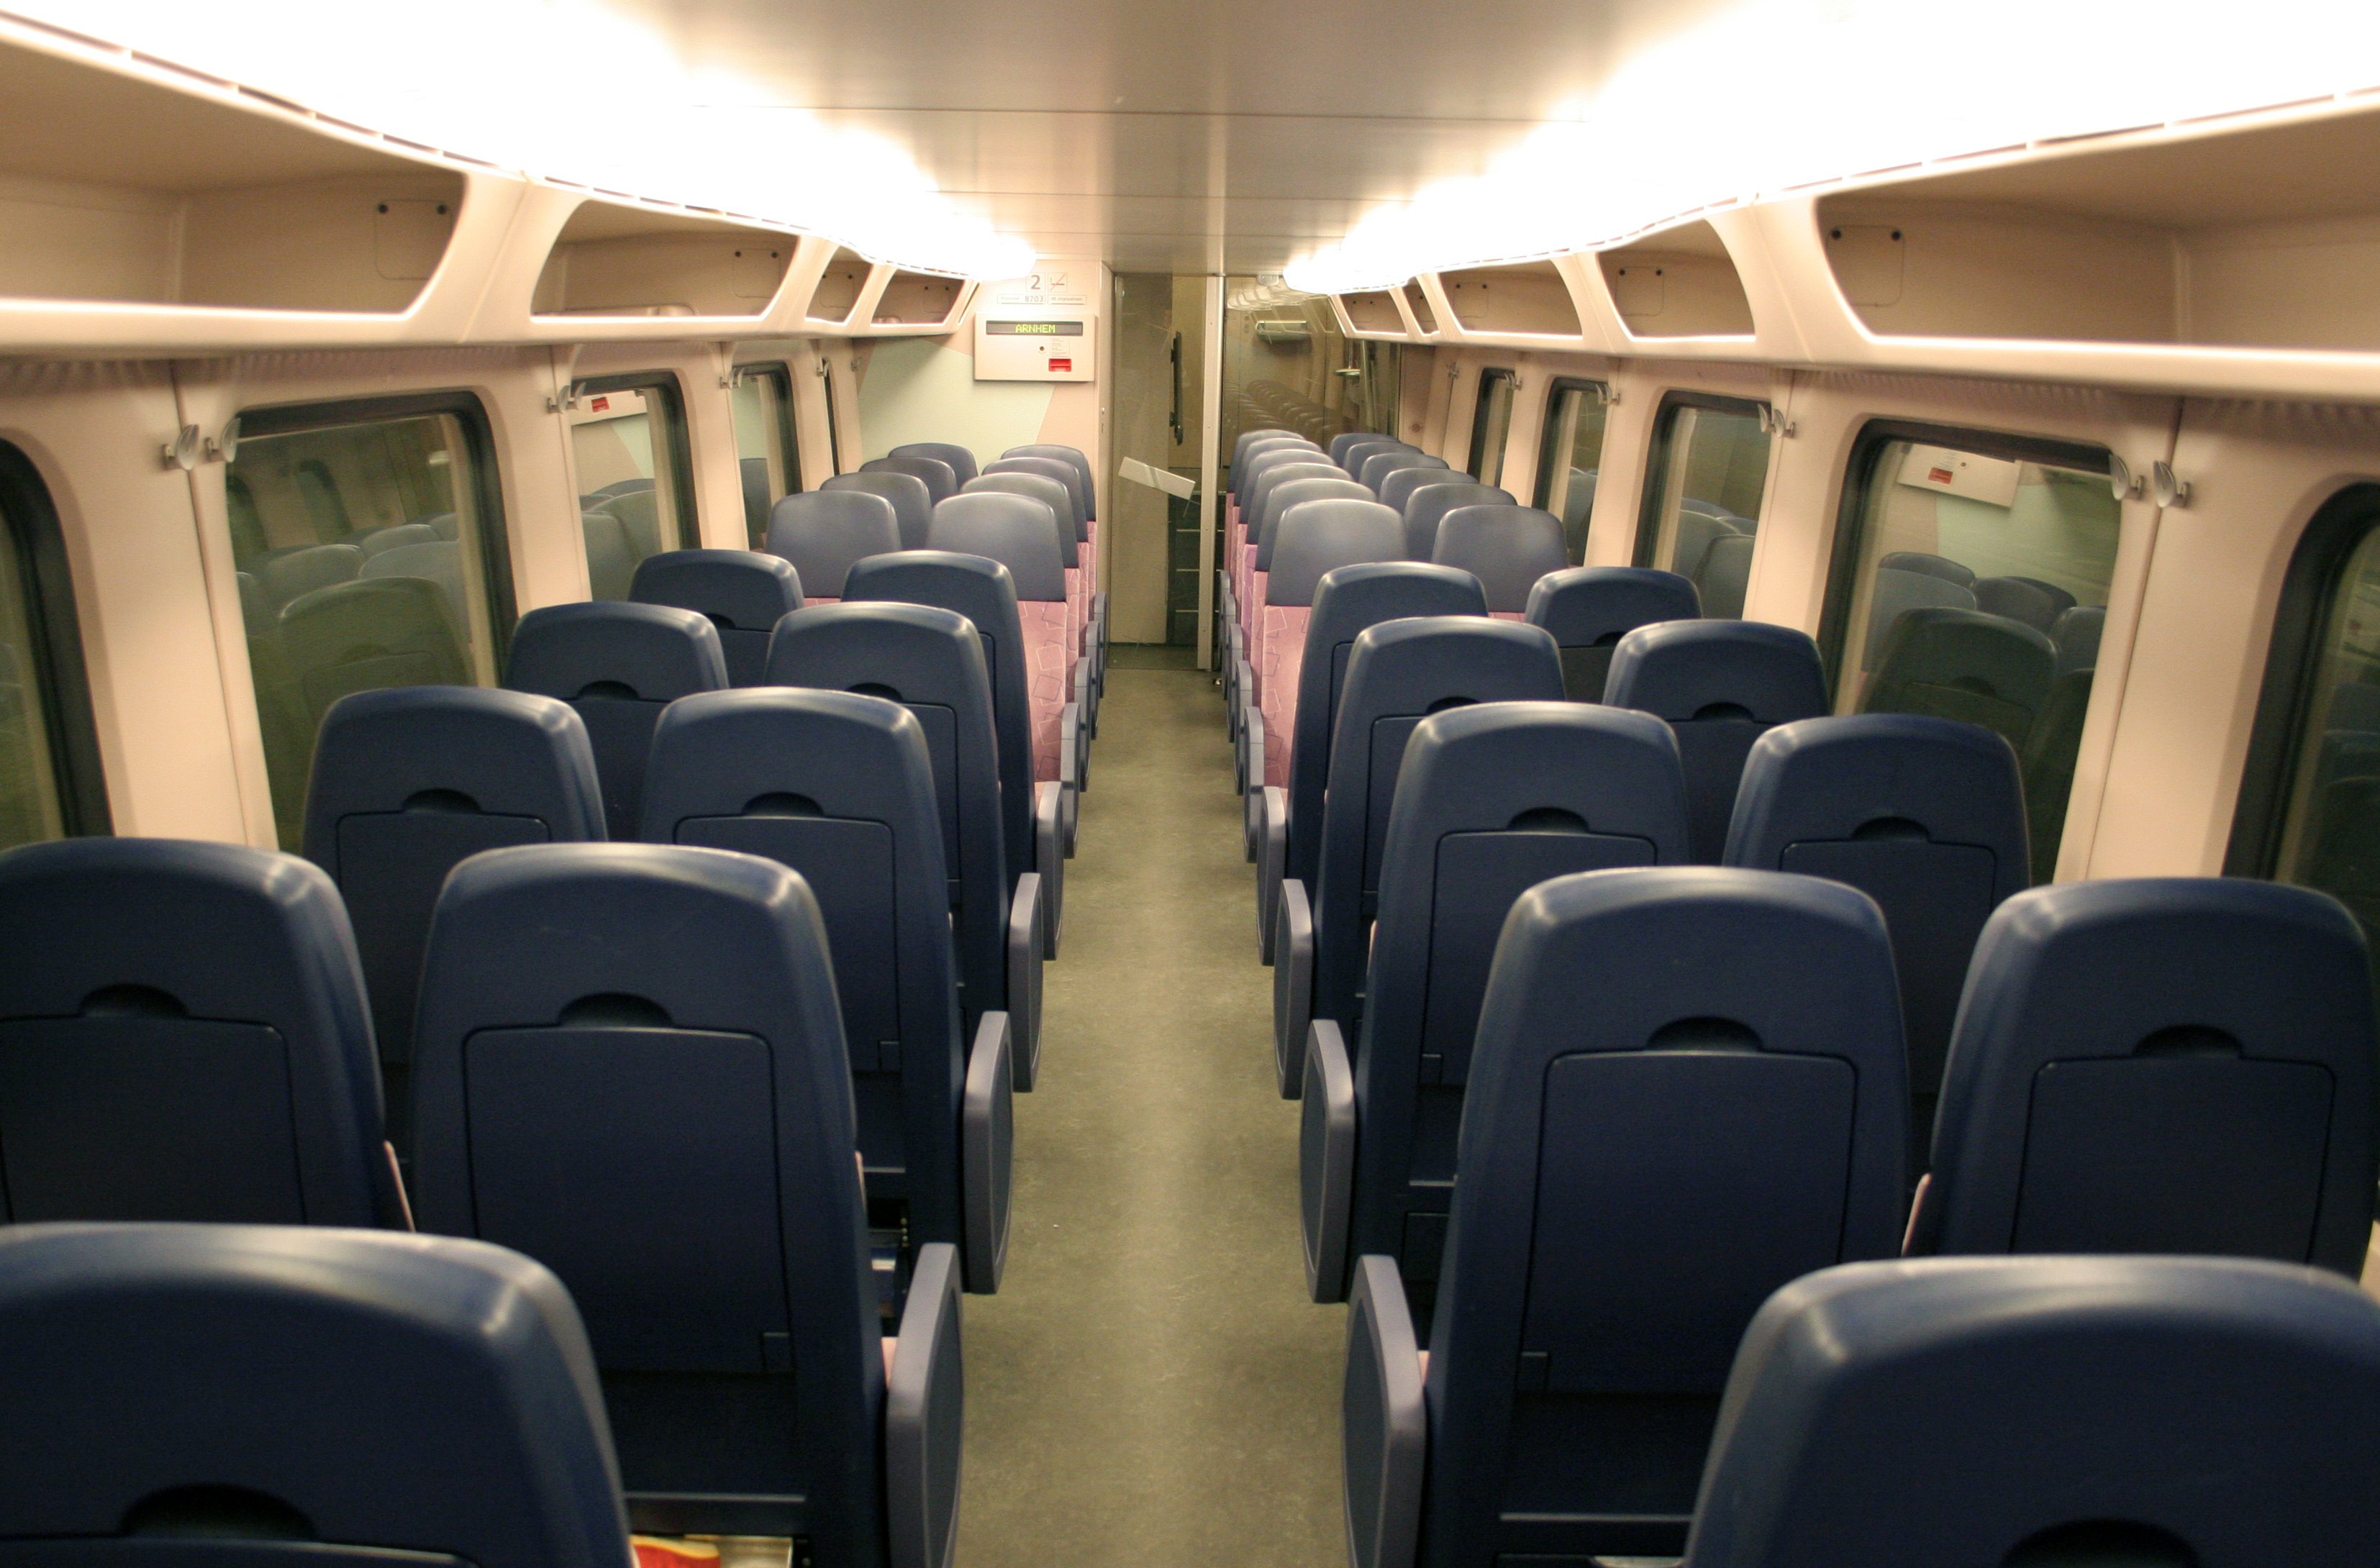 Interieur Trein File Interieur Virm Jpg Wikimedia Commons